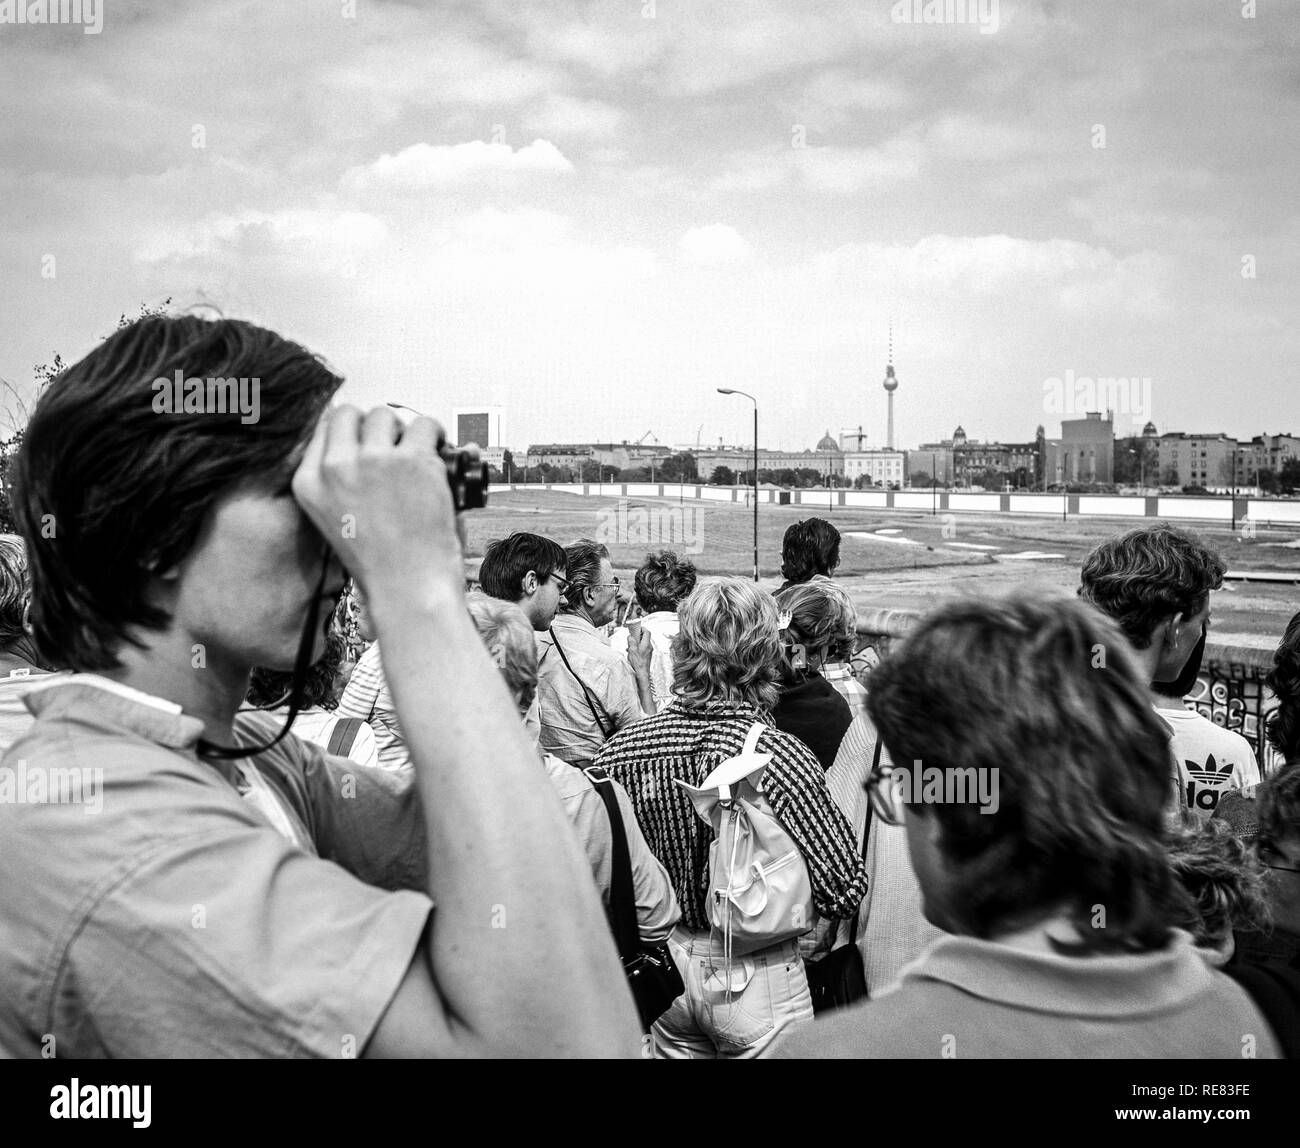 August 1986, Potsdamer Platz square observation platform, people looking over the Berlin wall to Leipziger Platz square, West Berlin, Germany, Europe, - Stock Image